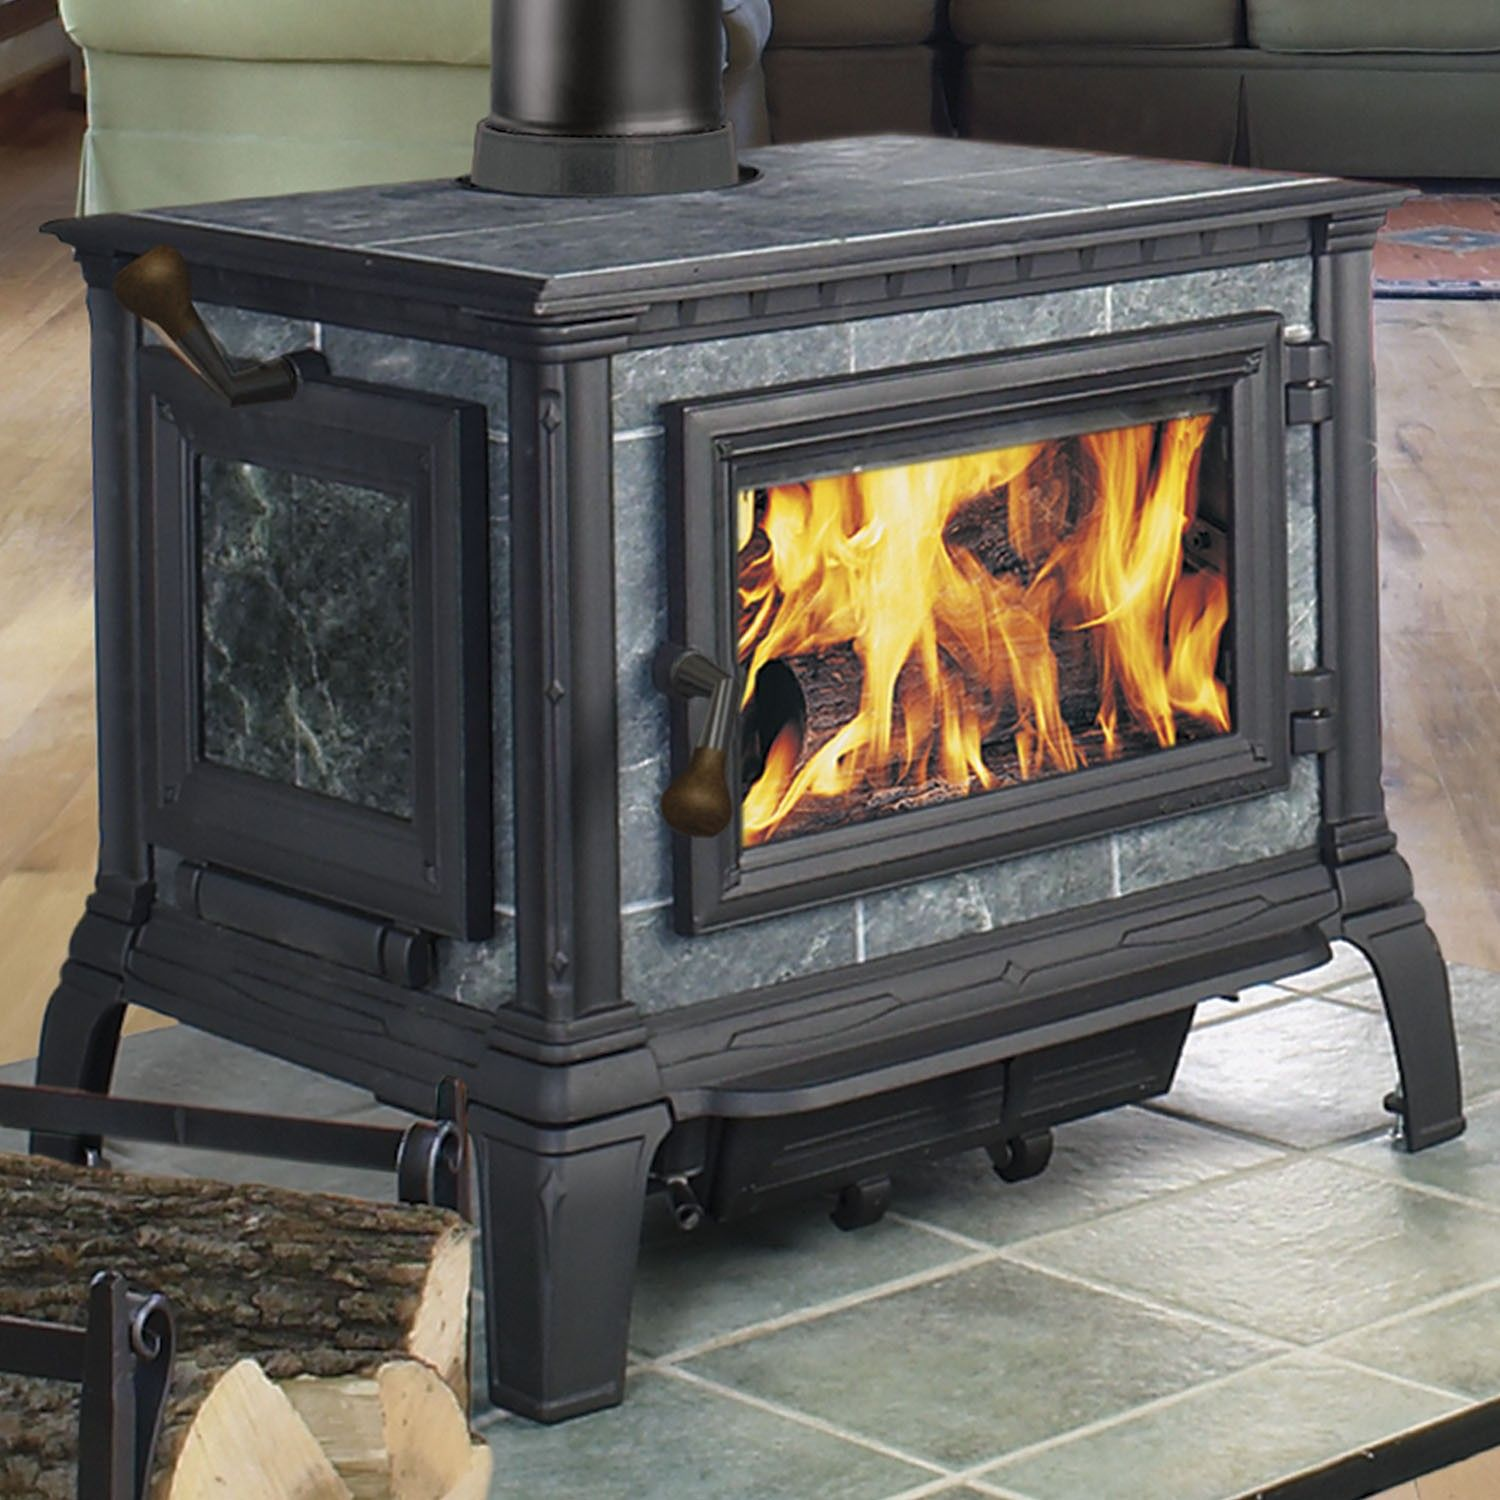 Our new wood stove. Hearthstone Equinox 8000. Soapstone with cast ...